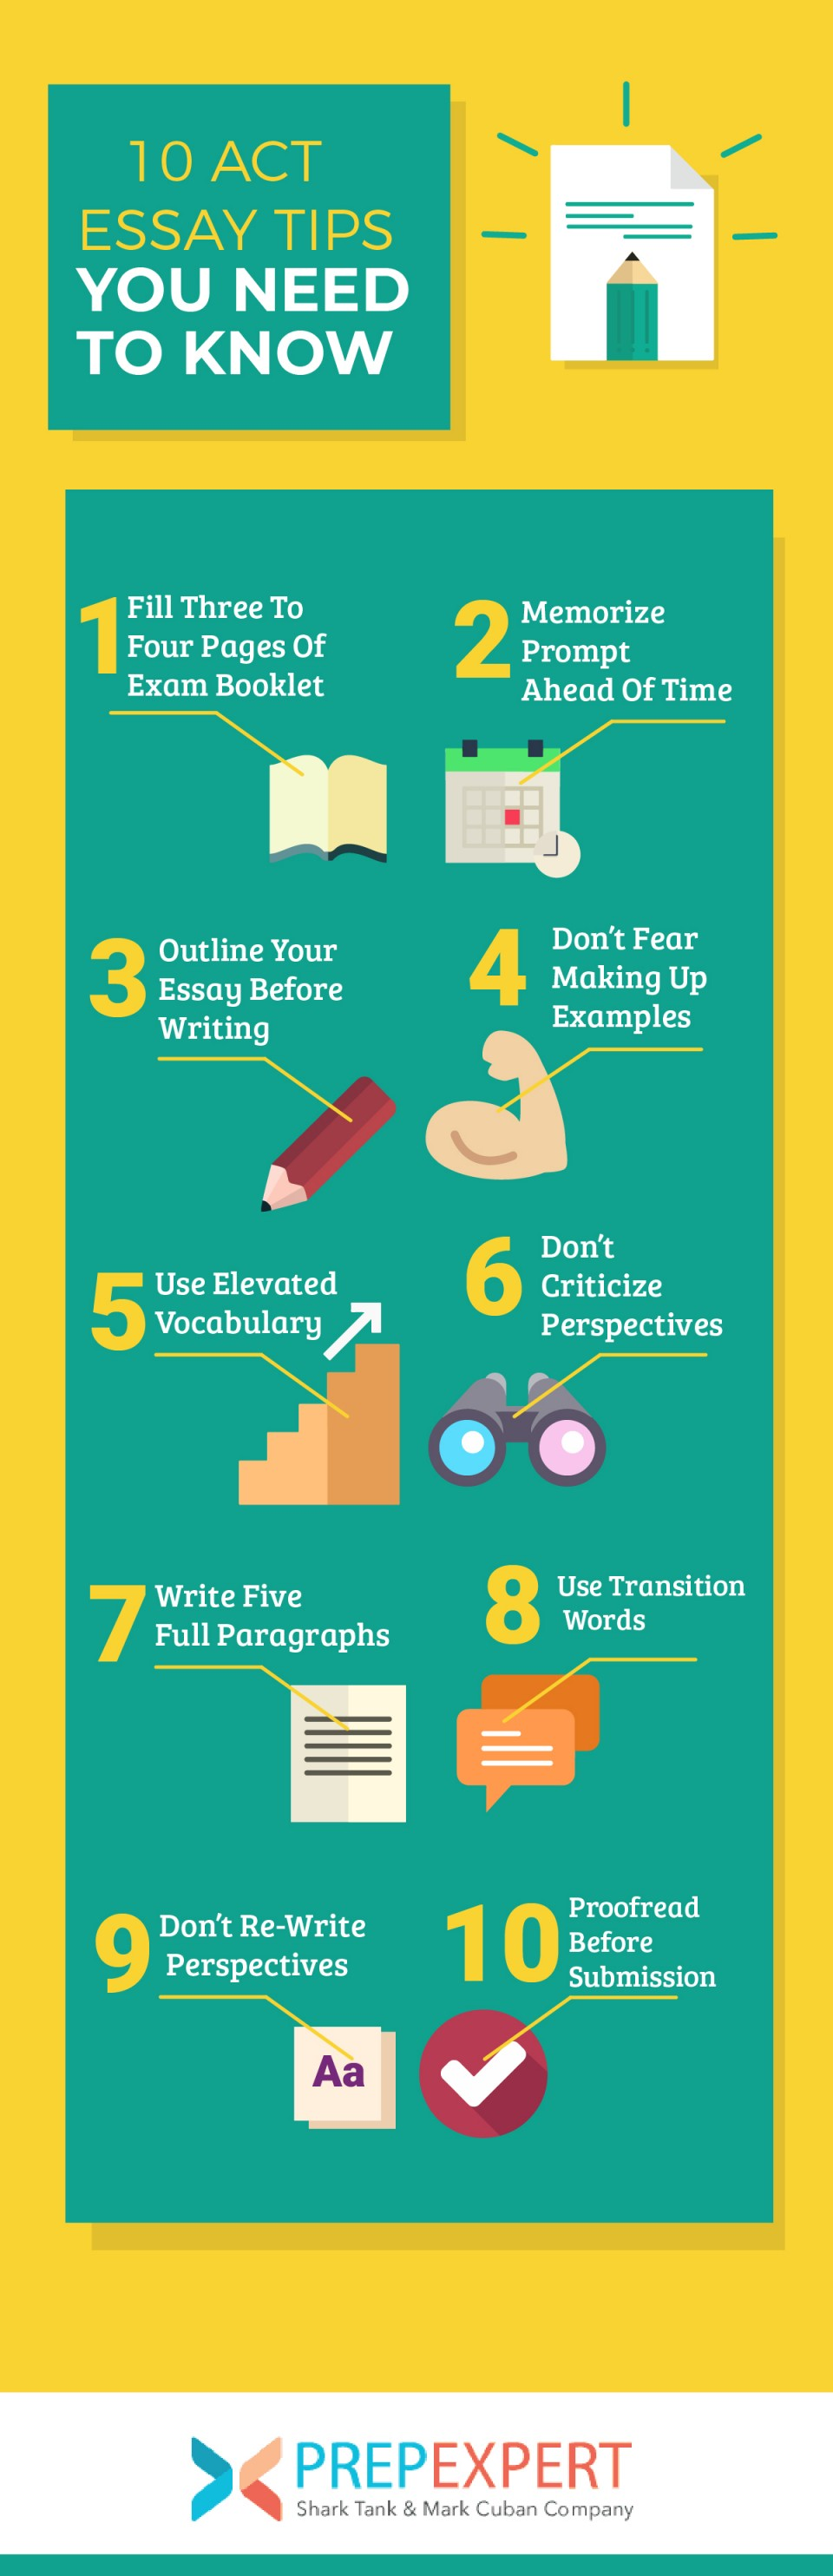 017 Essay Example Act 235585 Essayinfographics 052918 Fearsome Rubric Tips Score Distribution 960